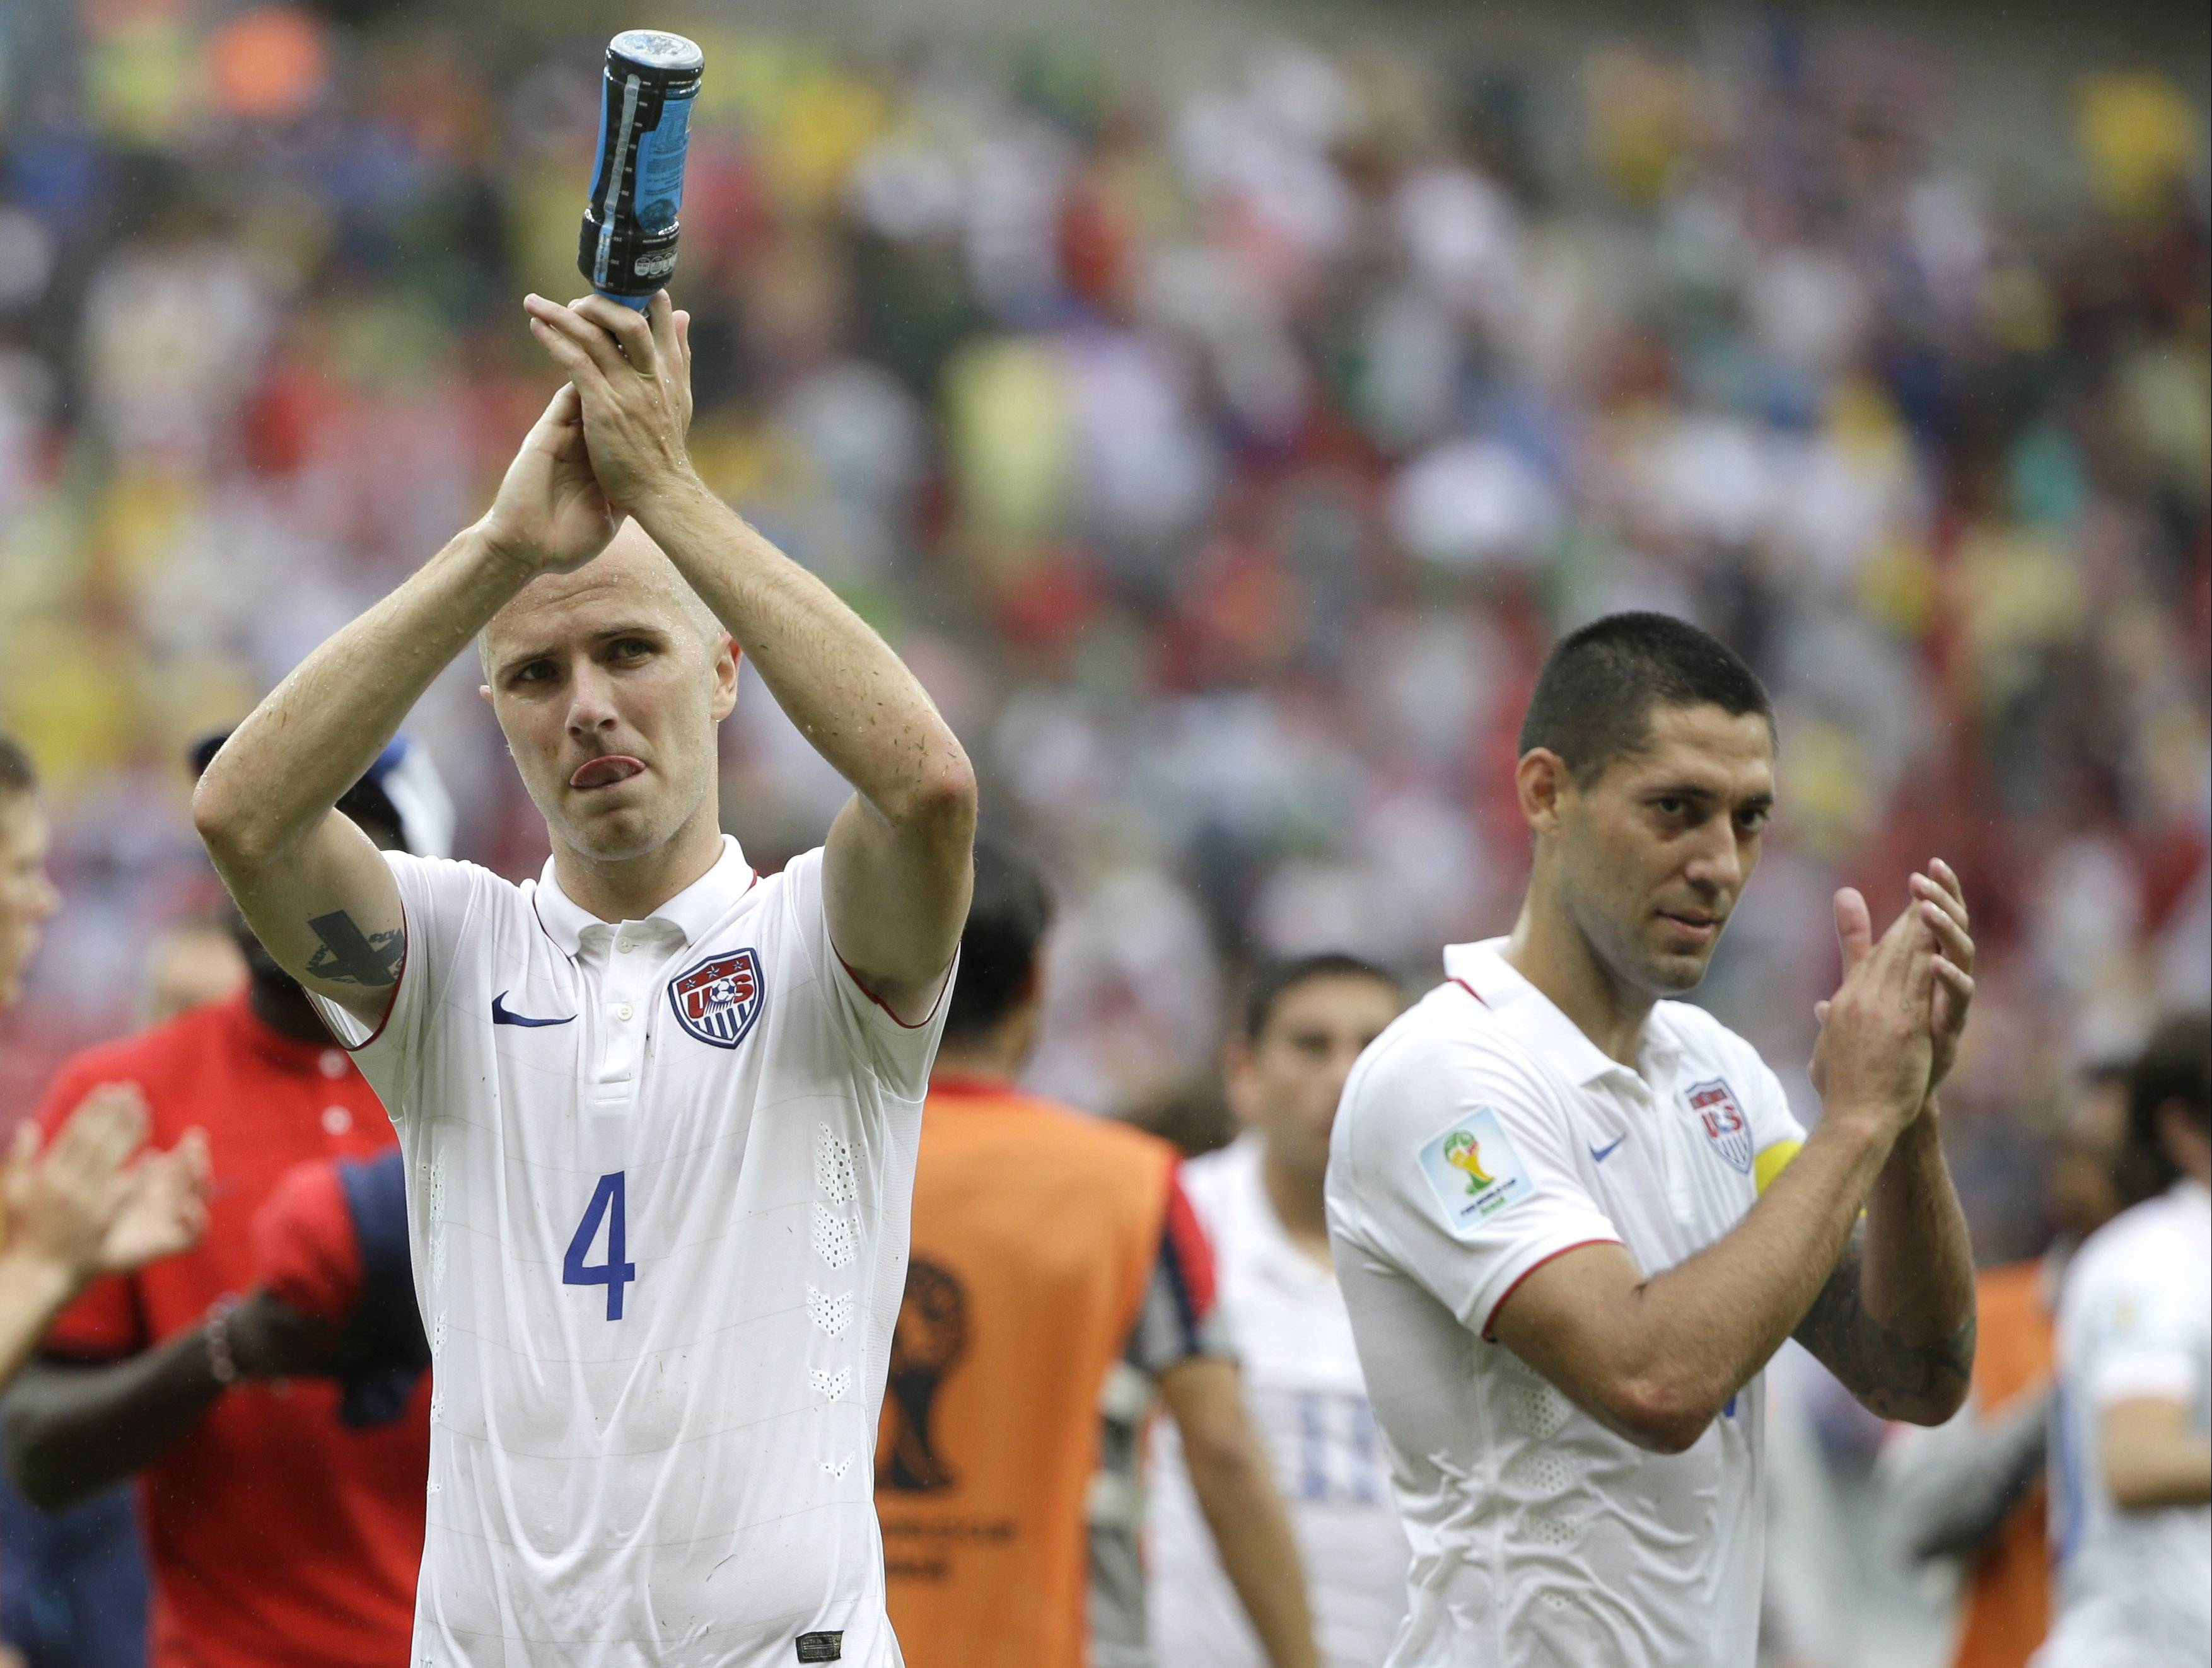 United States' Michael Bradley, left, and Clint Dempsey applaud after qualifying for the next World Cup round following their 1-0 loss to Germany during the group G World Cup soccer match between the USA and Germany at the Arena Pernambuco in Recife, Brazil, Thursday, June 26, 2014.